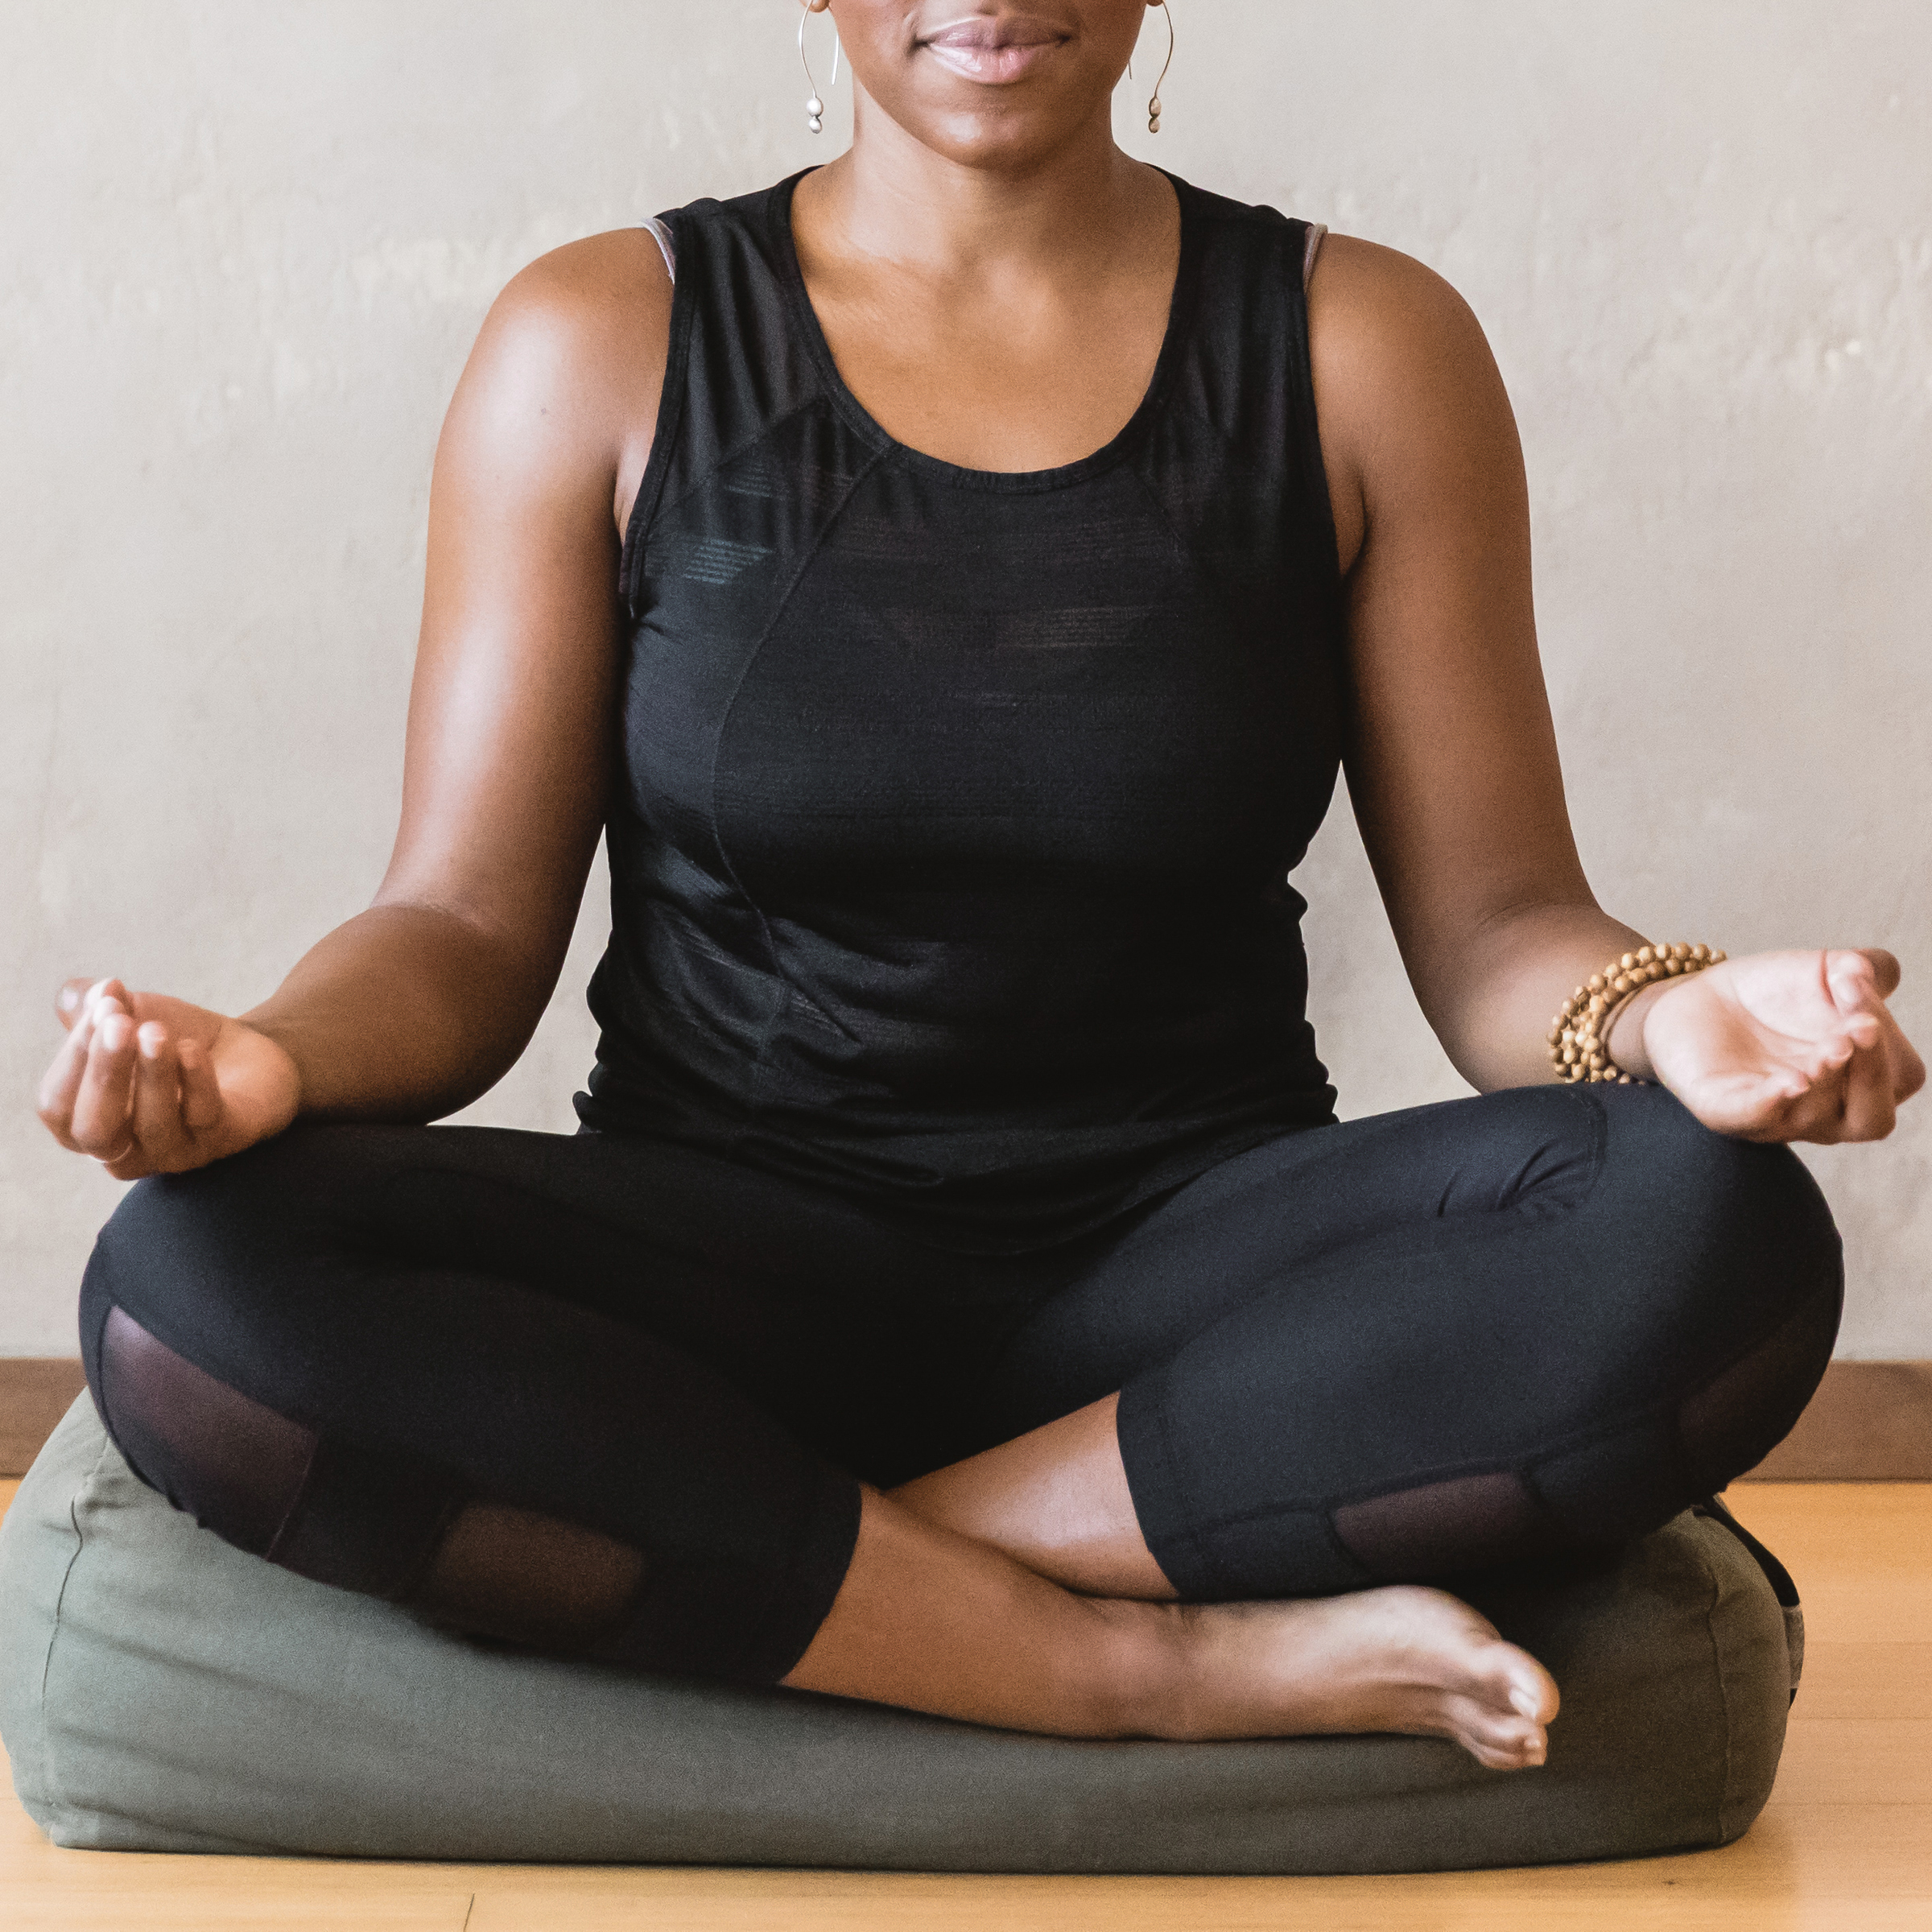 woman wearing black workout clothes meditating